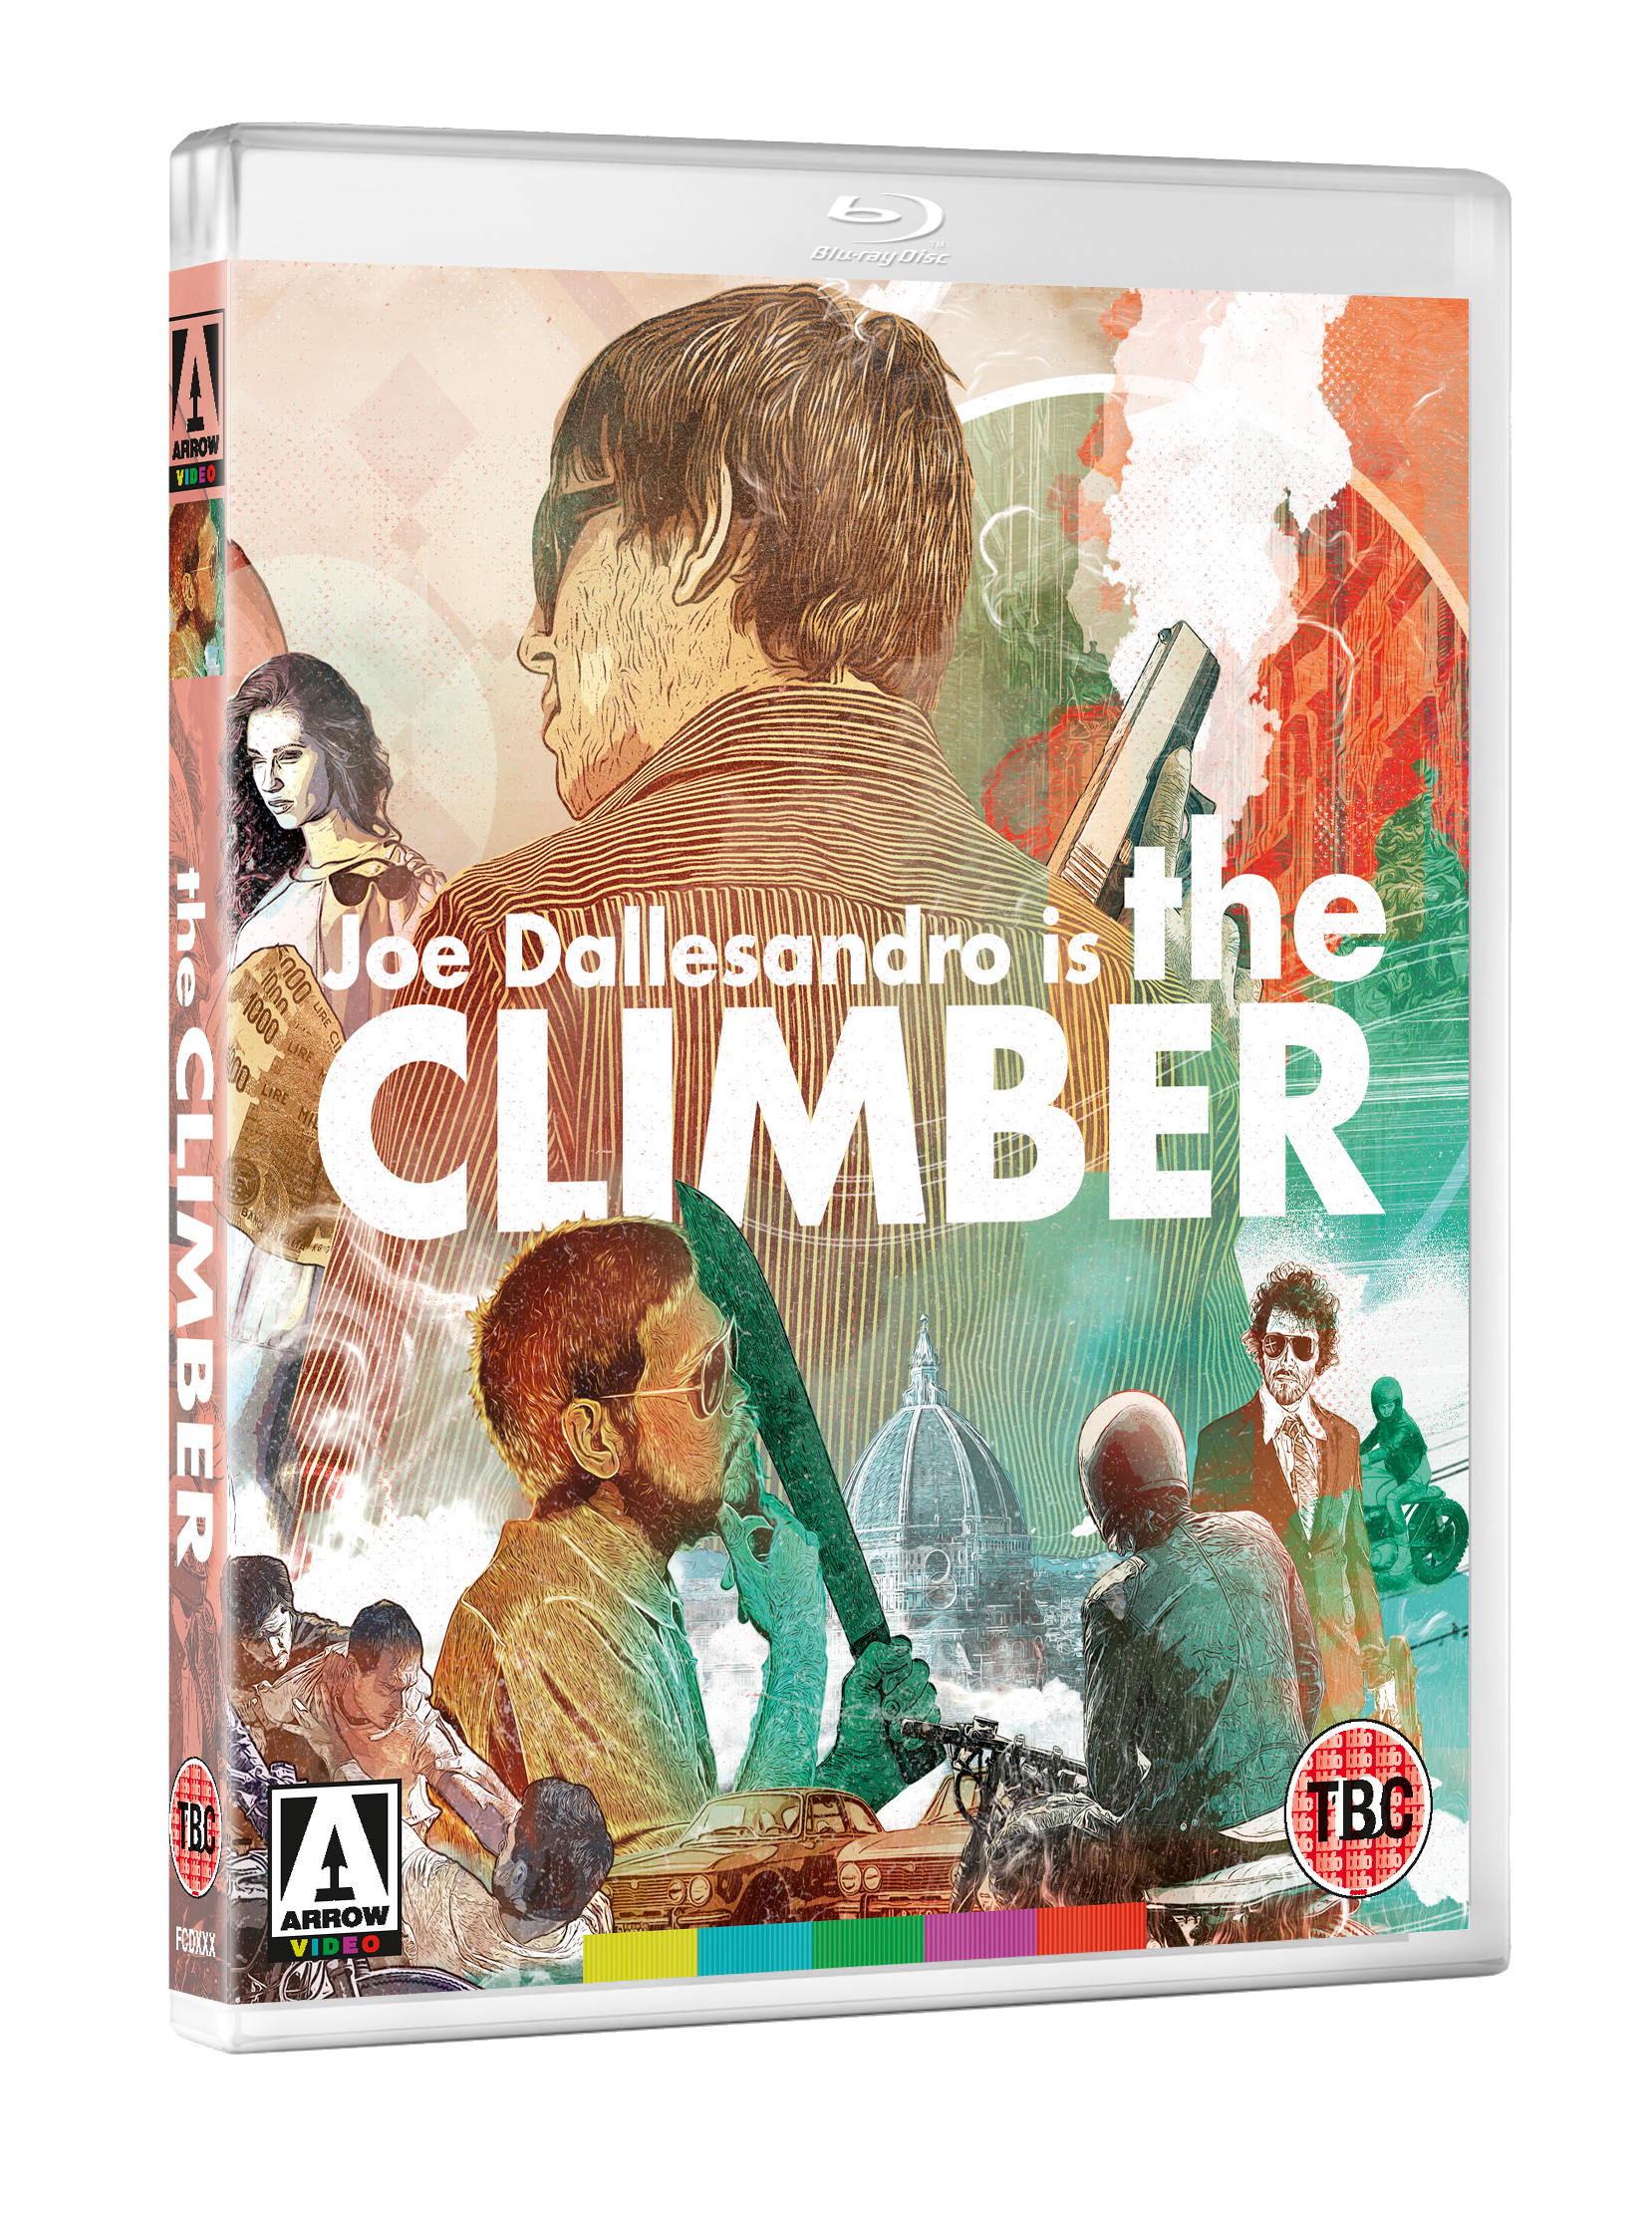 THE CLIMBER 3D BD po6GjNc Arrow Video announce May 2017 releases